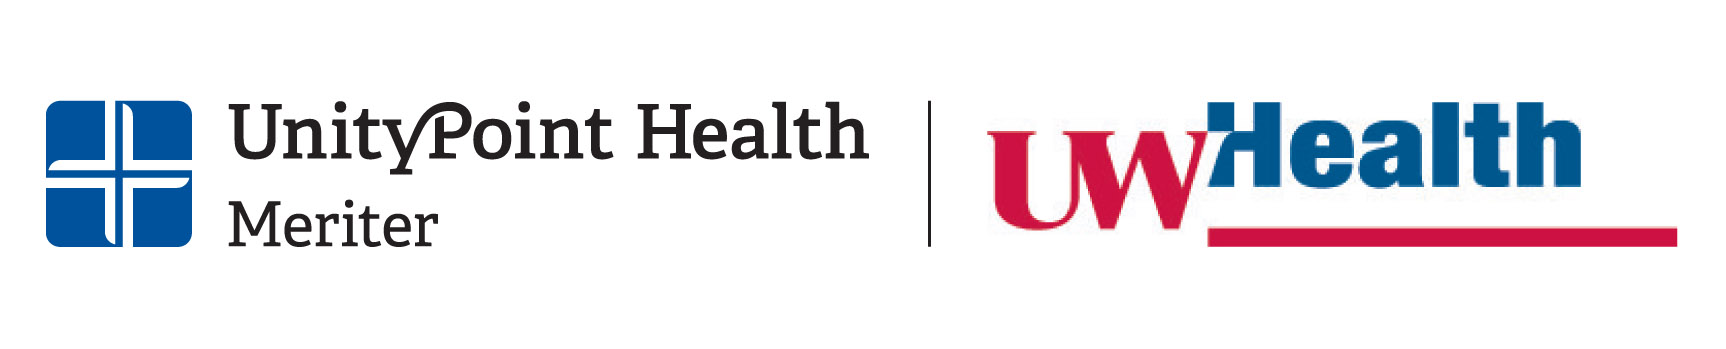 UnityPoint Health - Meriter and UW Health logo